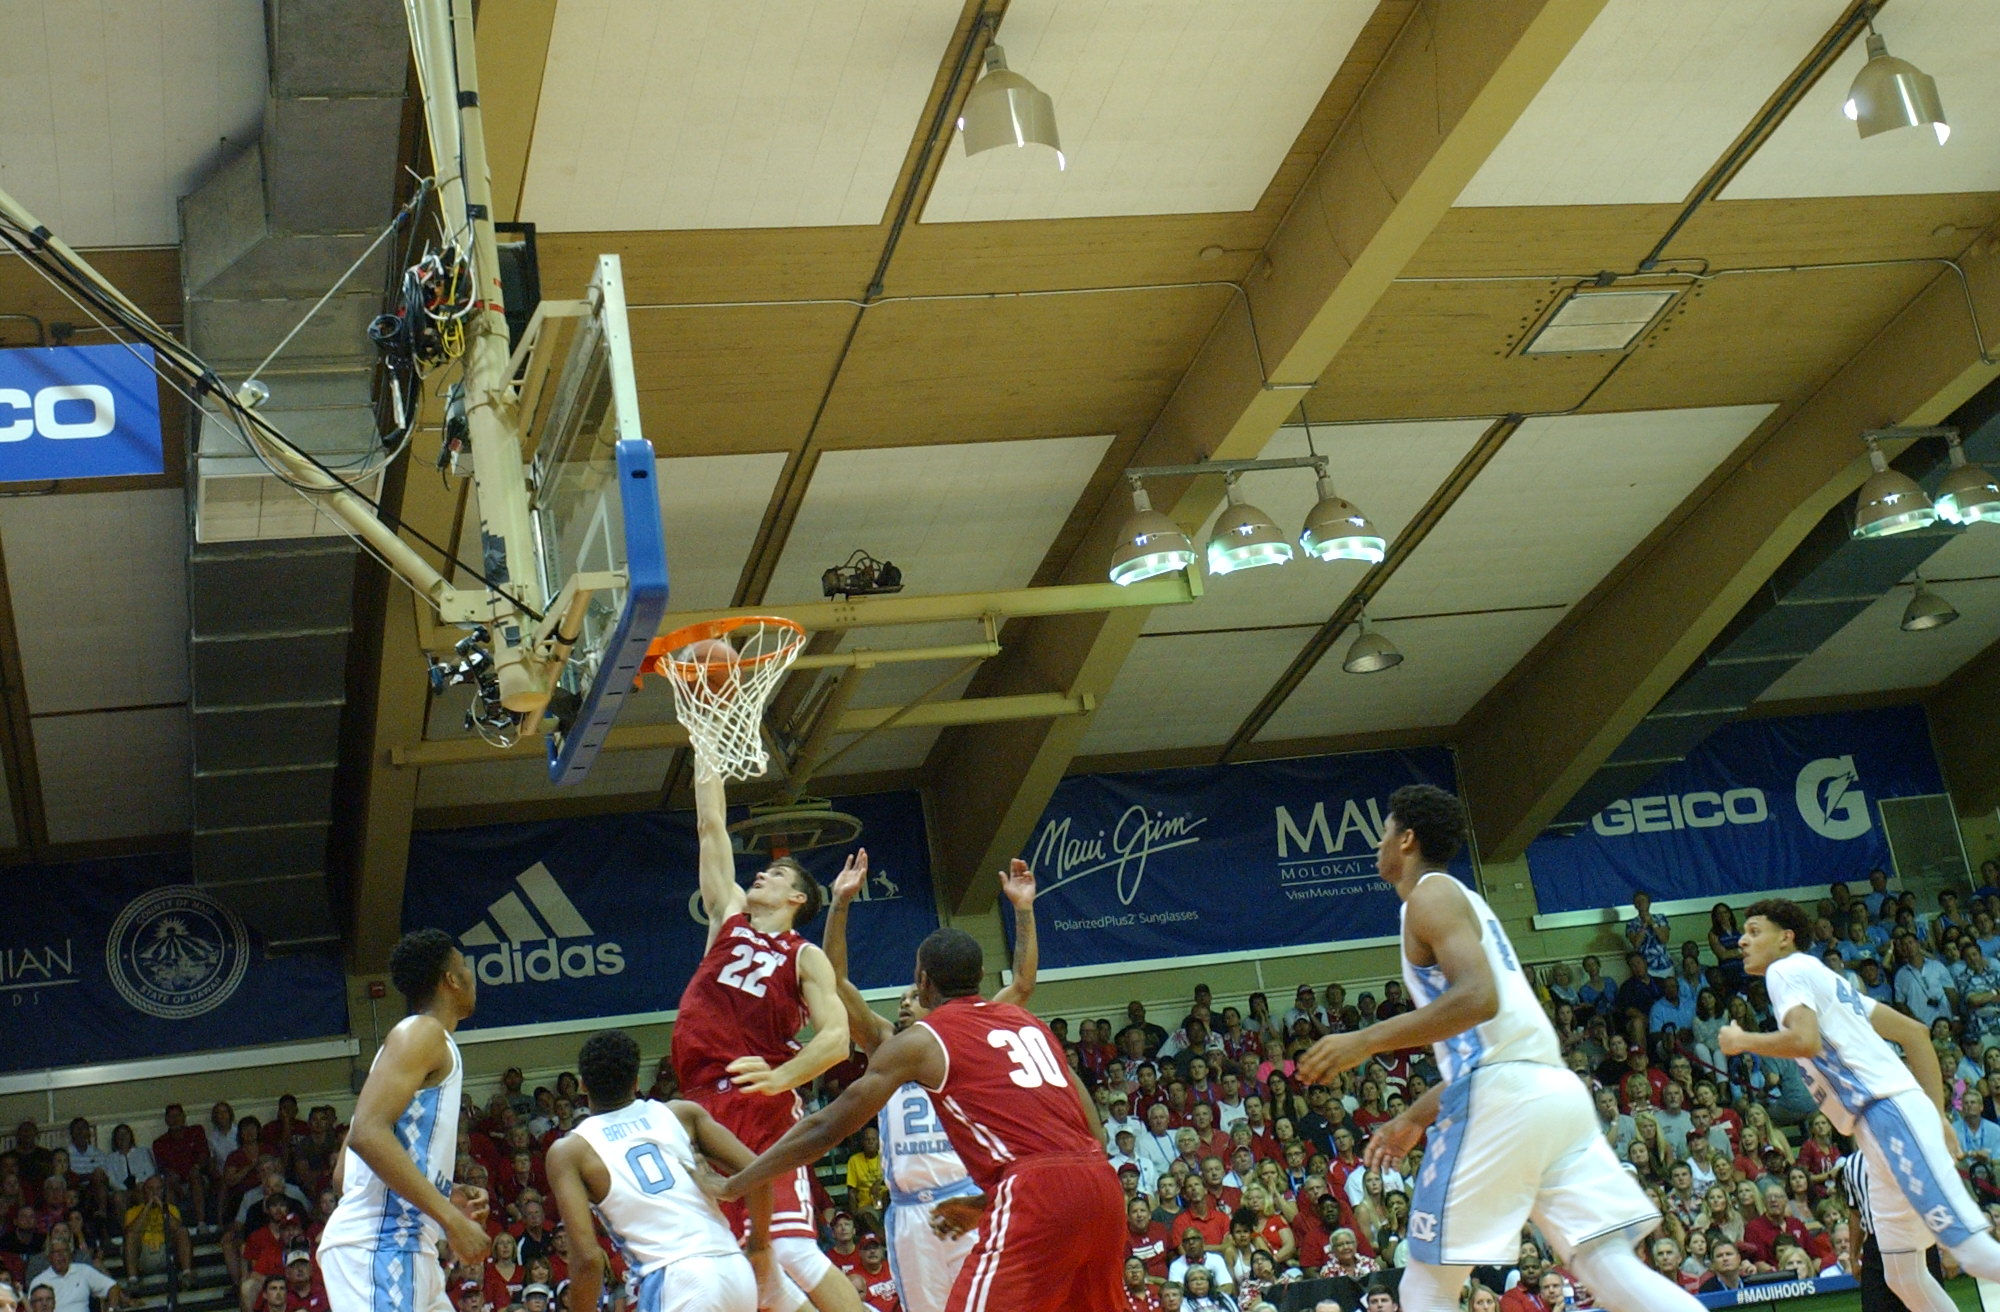 UW #22 Ethan Happ. Championship game between UW vs UNC at the 2016 Maui Jim Maui Invitational. PC: Joel B. Tamayo.